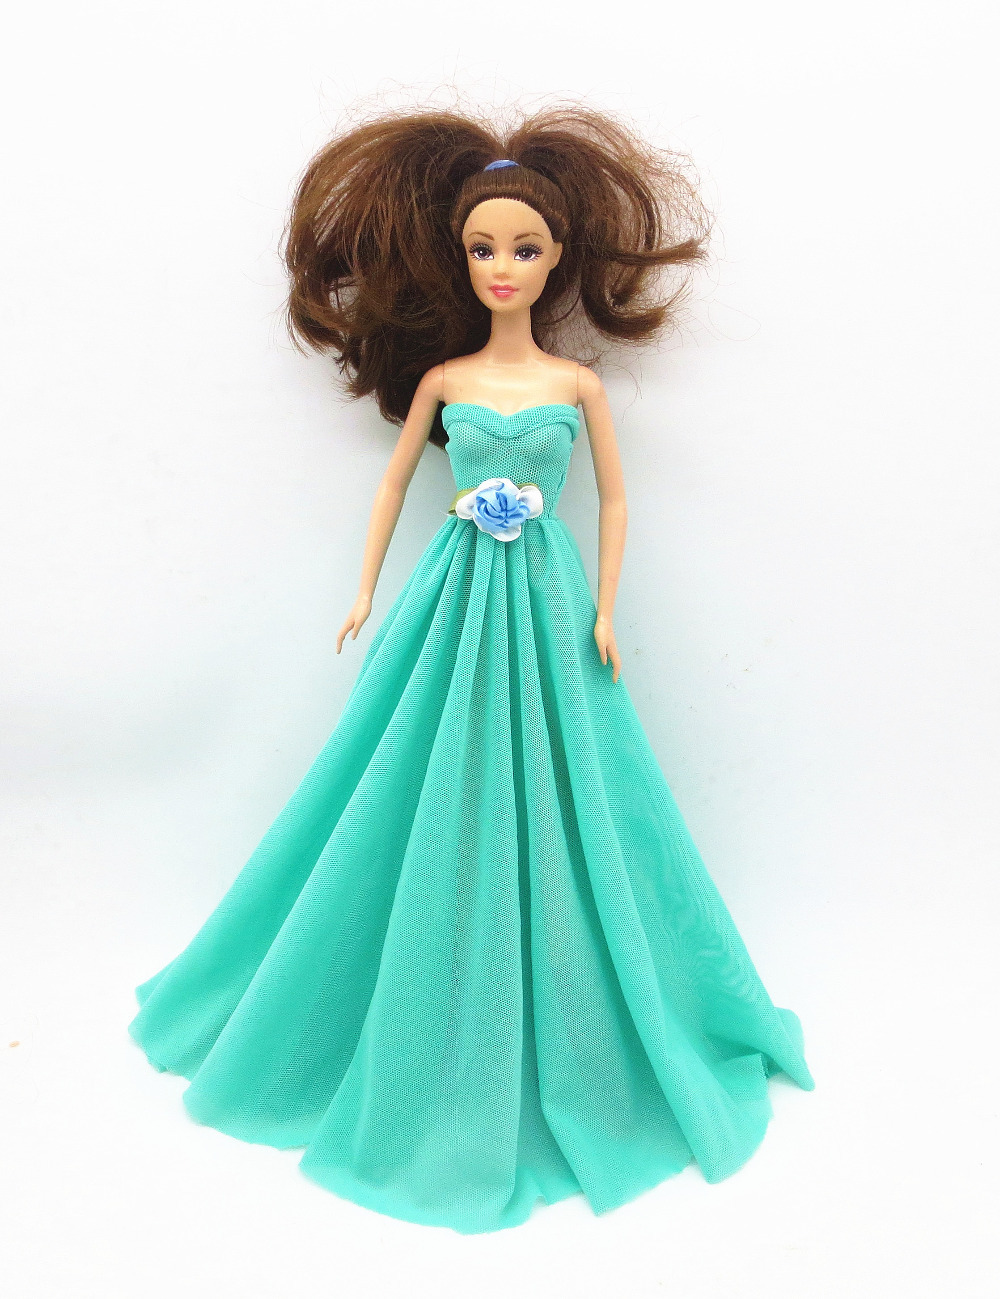 Where to buy christmas dresses - 2015 Handmade For Barbie Doll Clothes Dress The Best Christmas Gift Baby H496 China